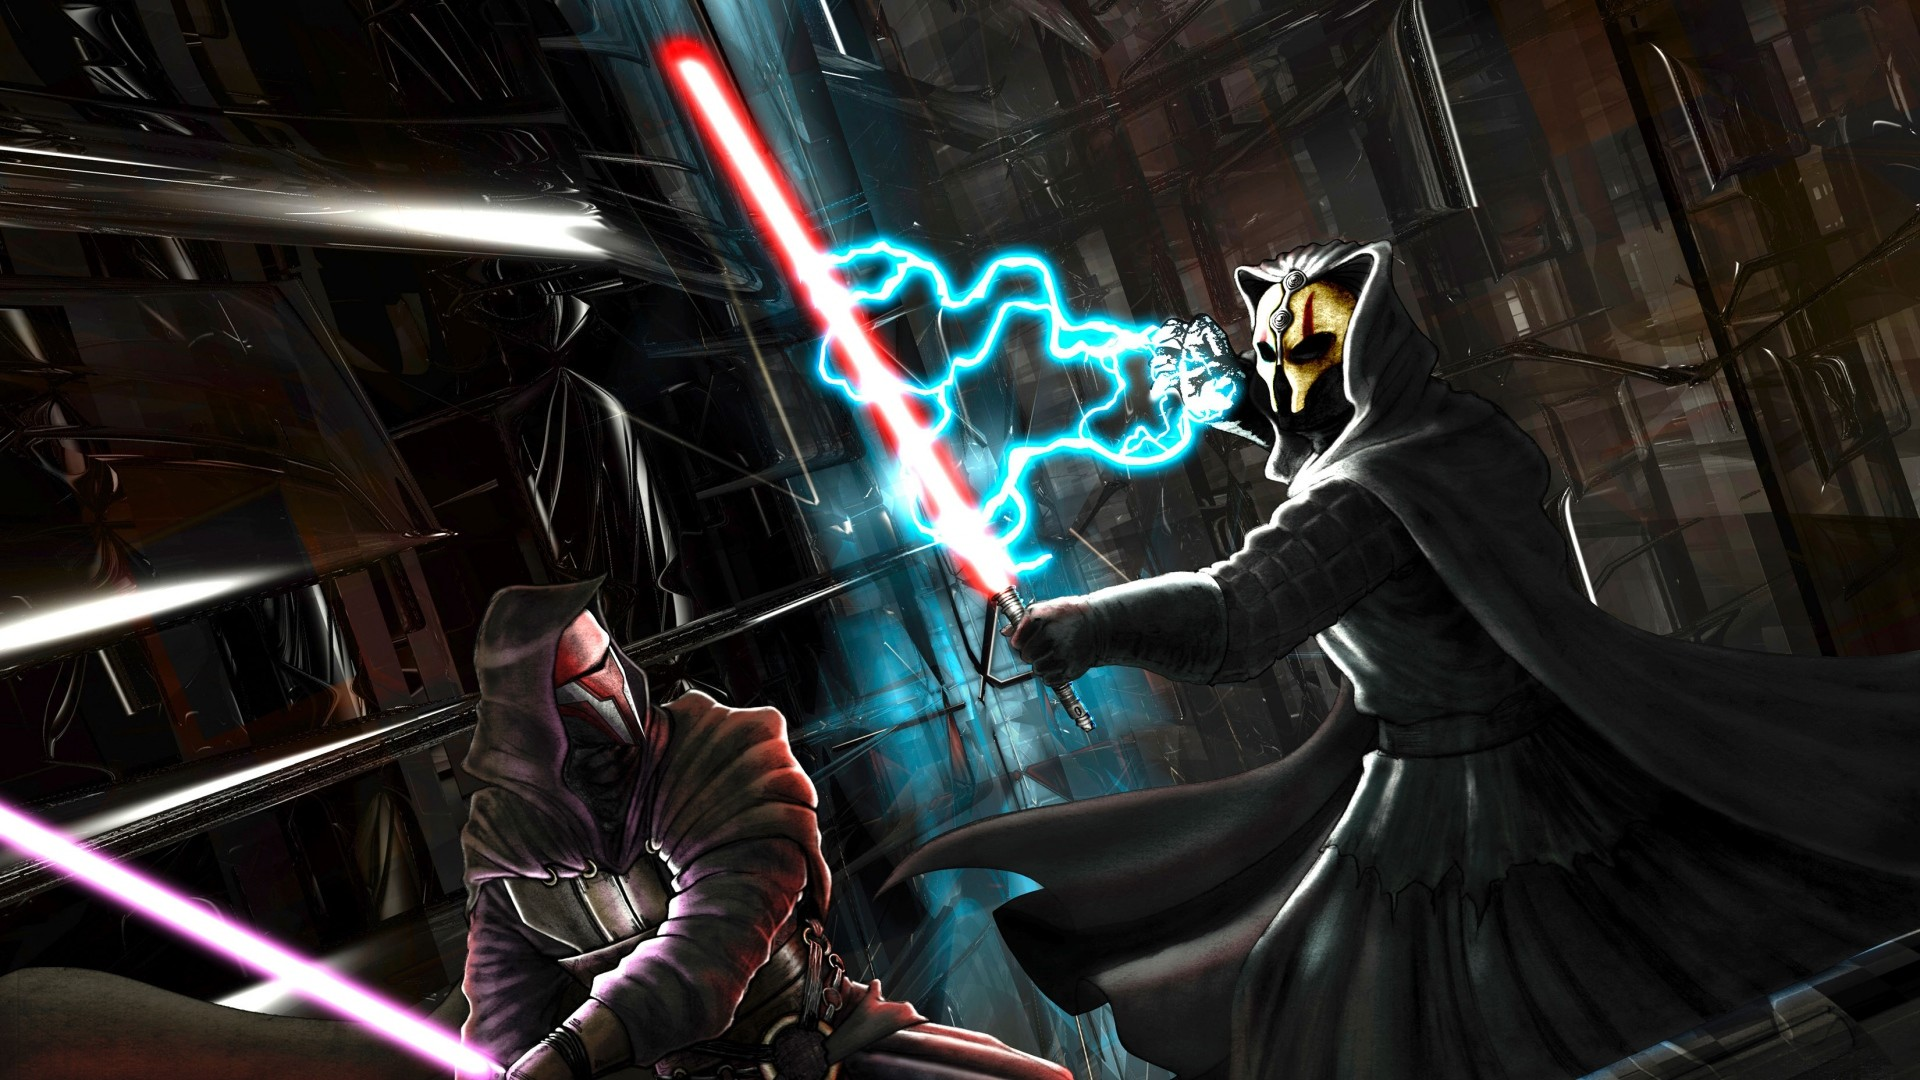 1920x1080  Wallpaper star wars, knights of the old republic, darth revan,  darth nihilus